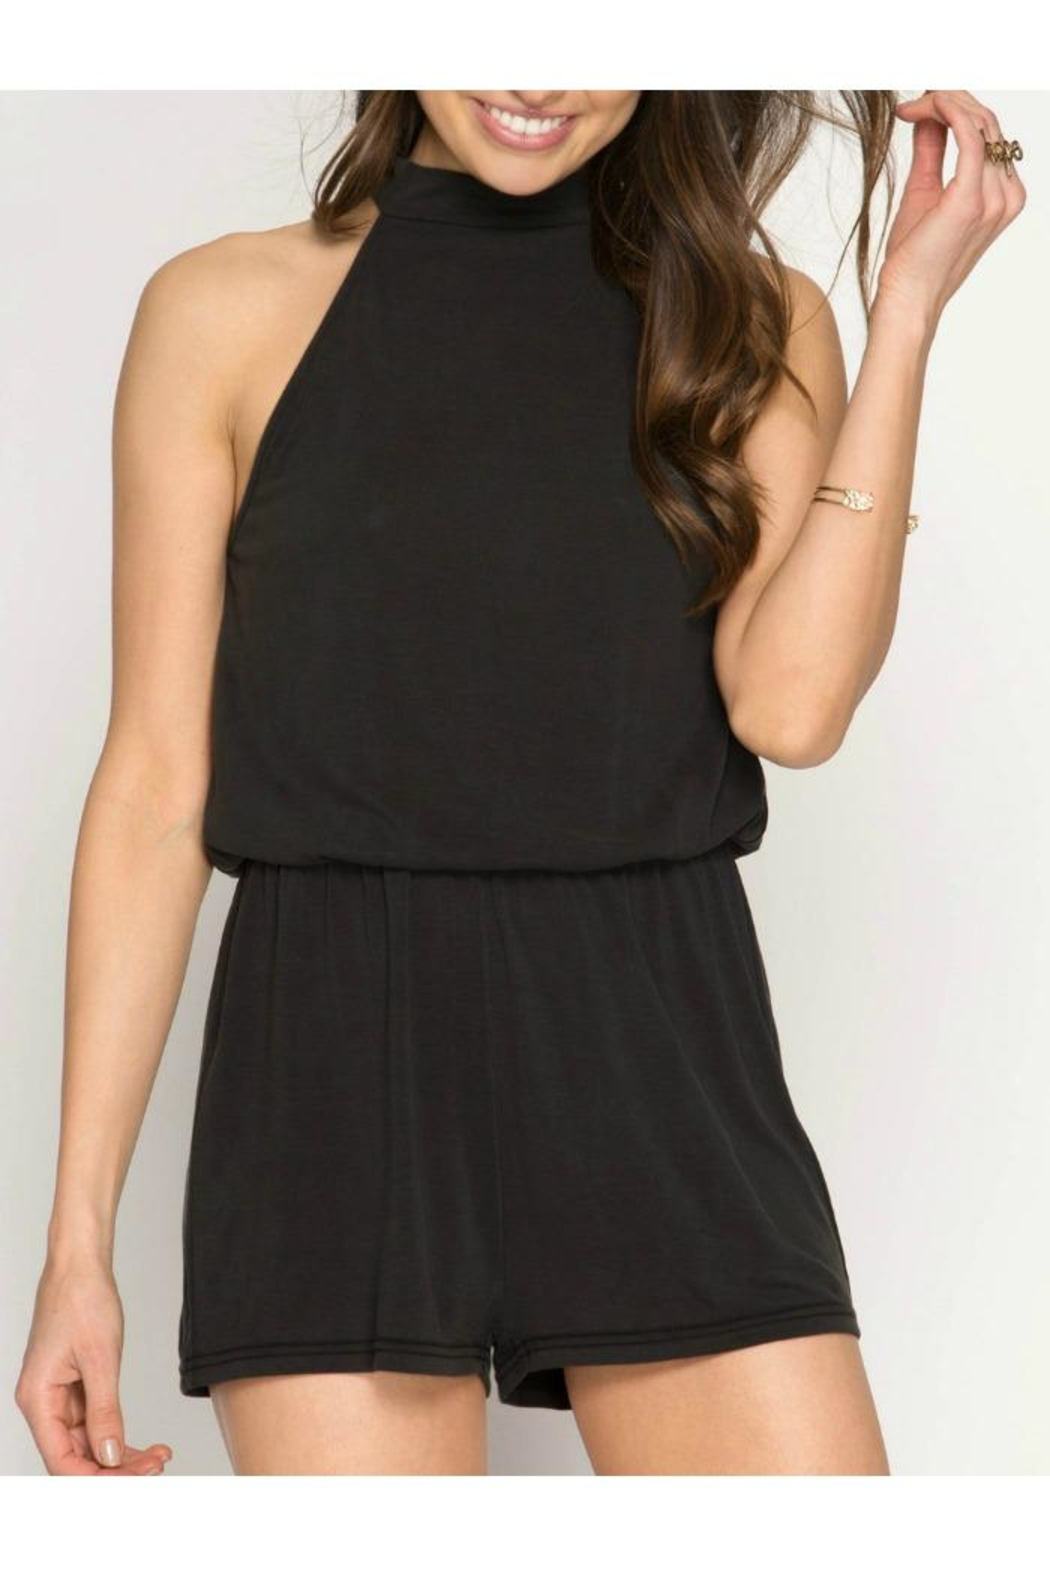 85810939deea She + Sky High Neck Romper from Massachusetts by Moxy Boutique ...